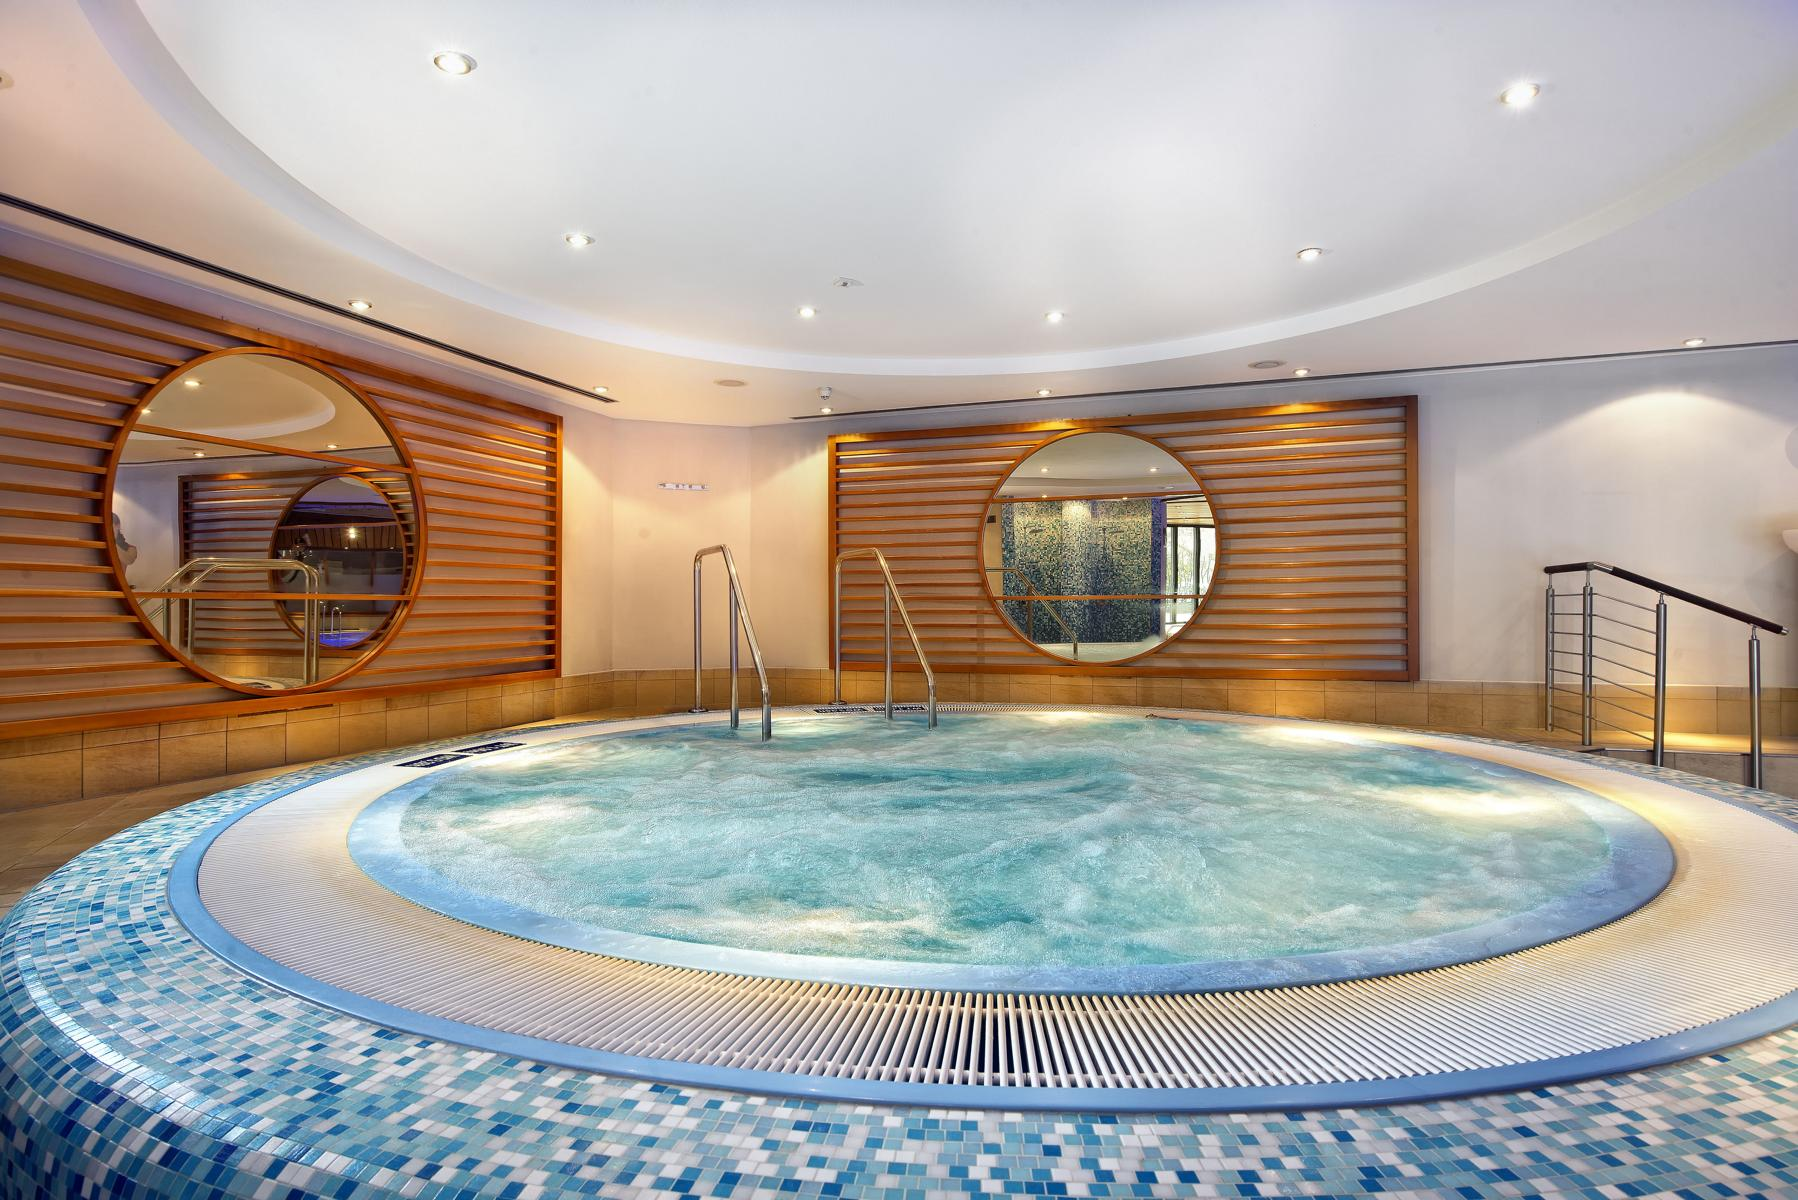 Intercontinental Berlin Whirlpool